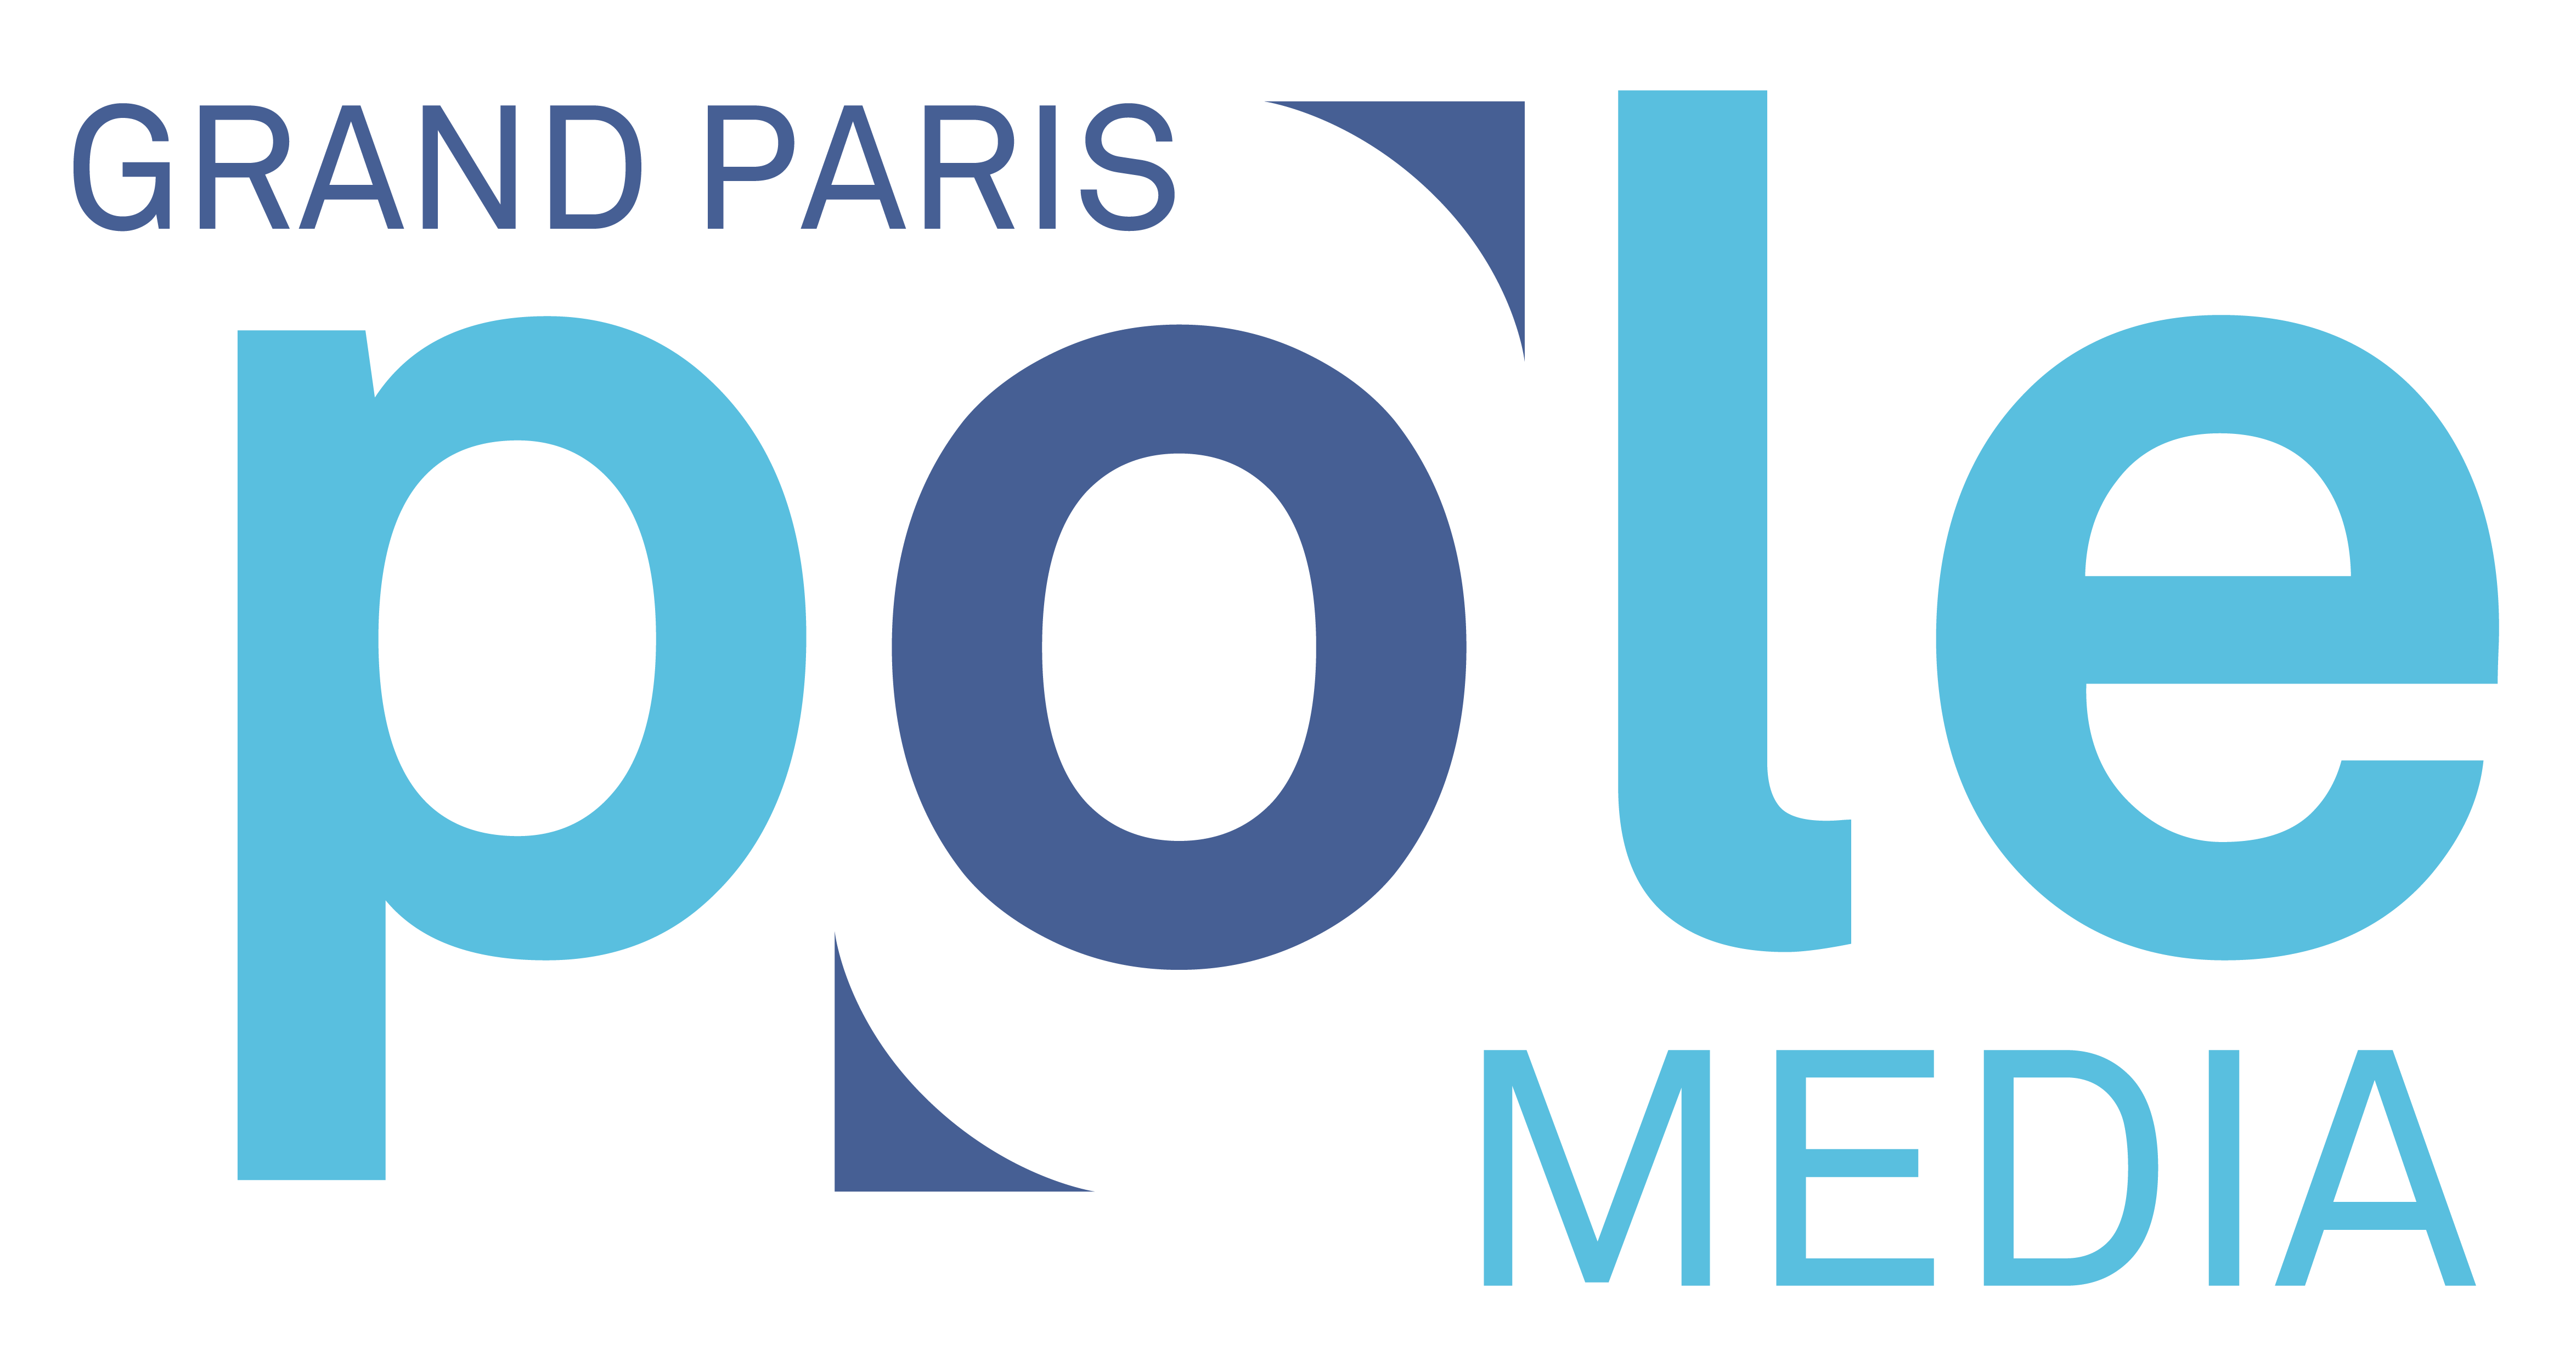 Pole Media Grand Paris